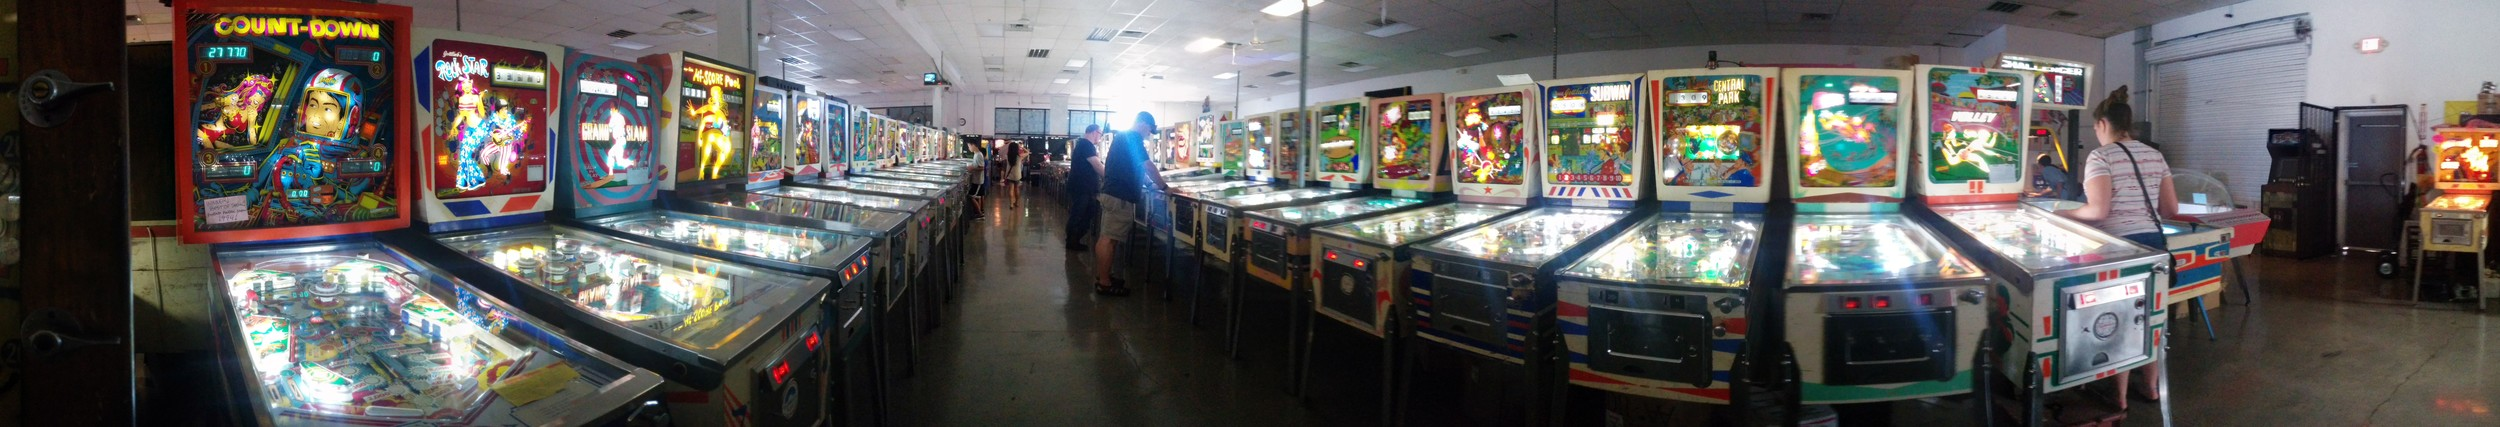 #1 Pinball Hall of Fame. Don't knock it 'til you try it.